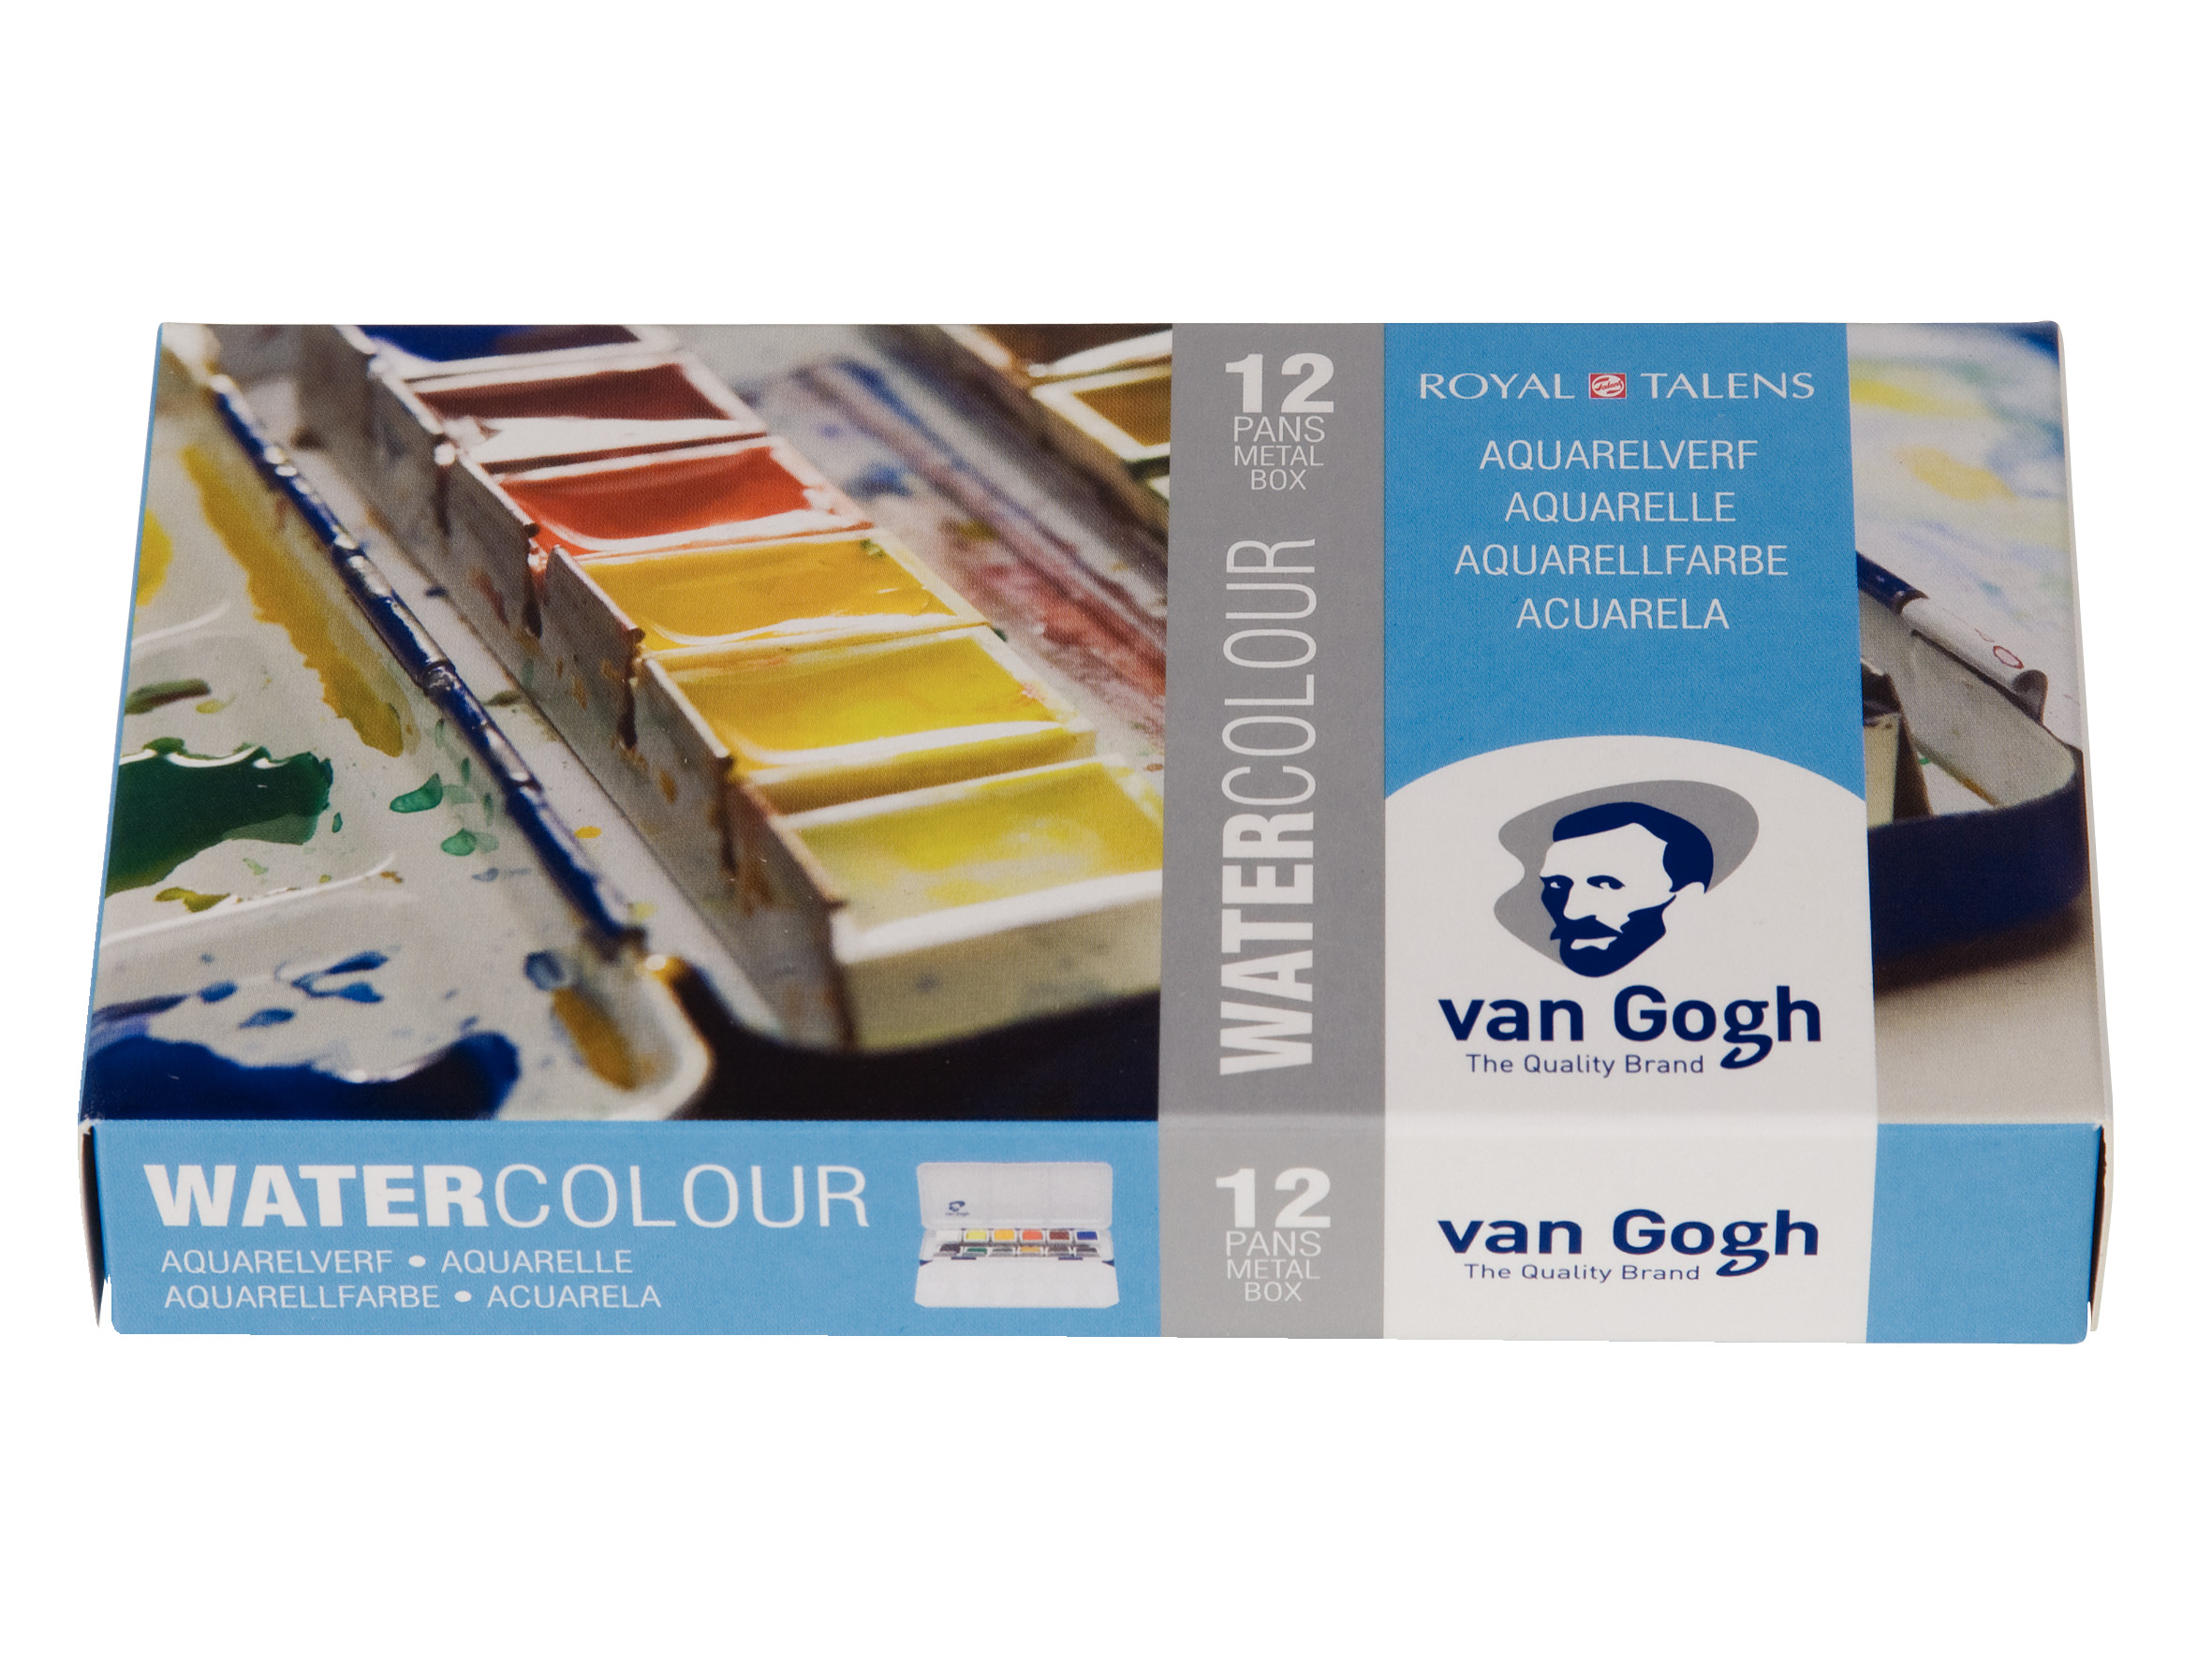 Van Gogh Water Colour Metal Case Set with 12 Colours in Half Pans